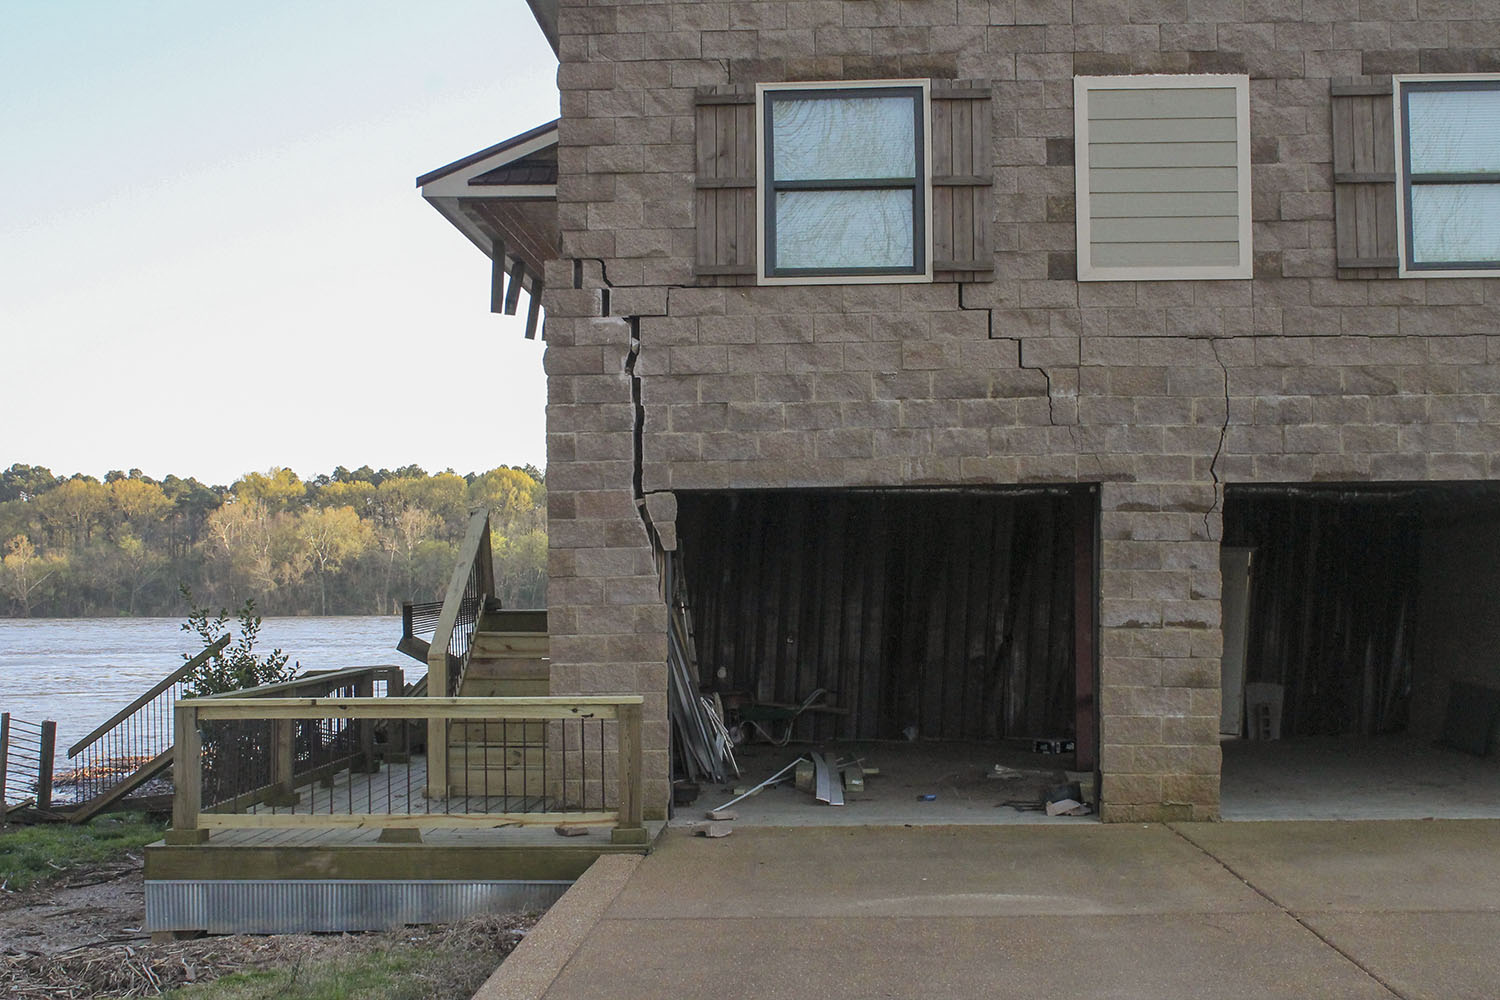 Large cracks are evident after 14 barges broke away from a towing vessel March 26 and hit a house on the Tennessee River in Savannah, Tenn. (Photo by R. Kelly Jordan, The Courier)